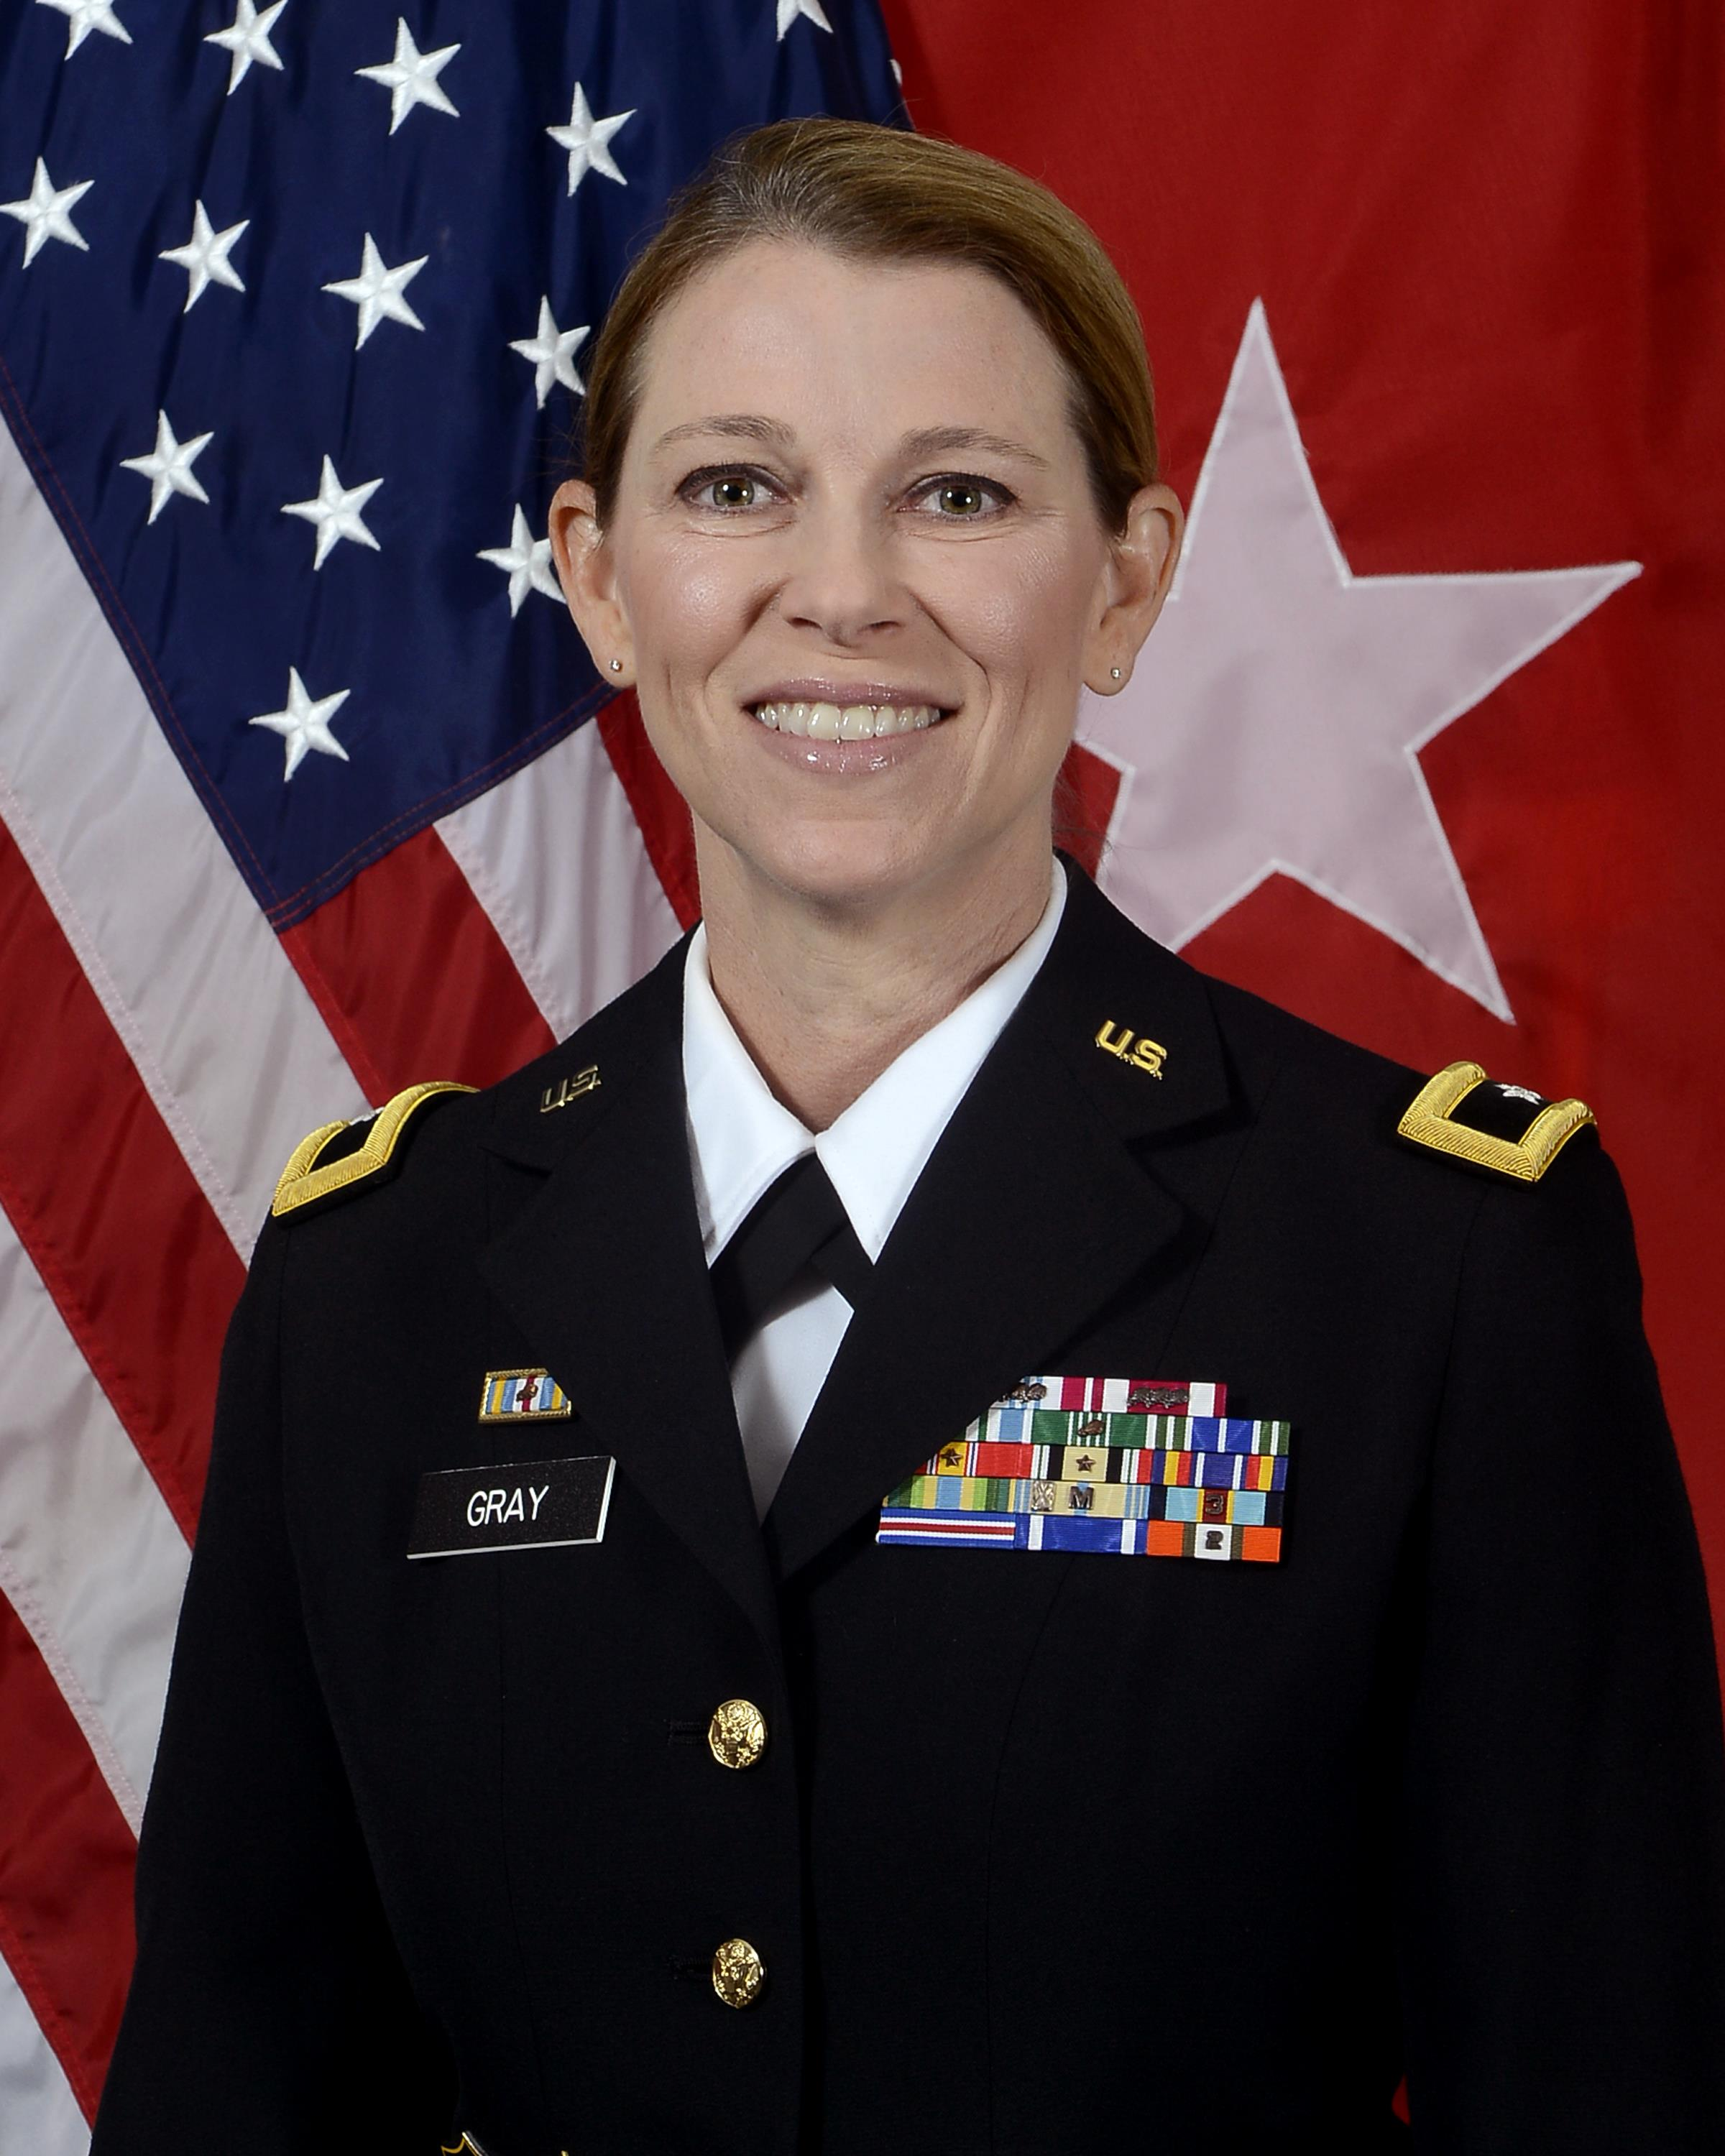 Brigadier General Lee Gray  US Army Reserve  Article View